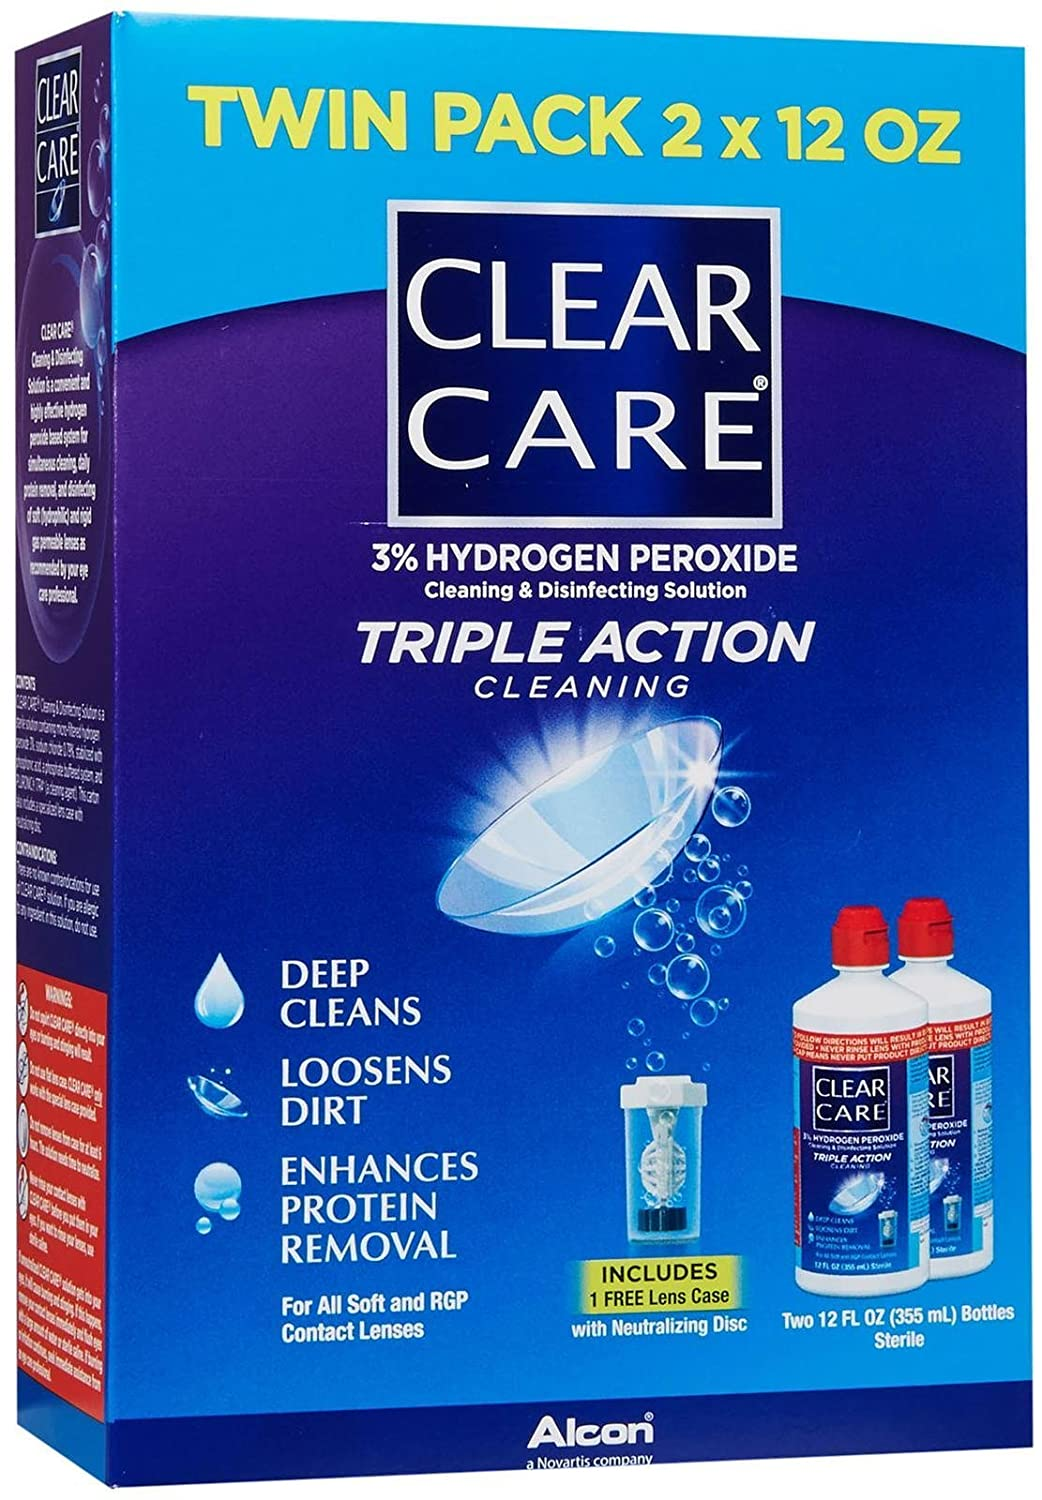 Clear Care No Rub Cleaning & Disinfecting Solution Value Pack 24 Fl Oz (710 Ml) CIBA VISION CORPORATION.